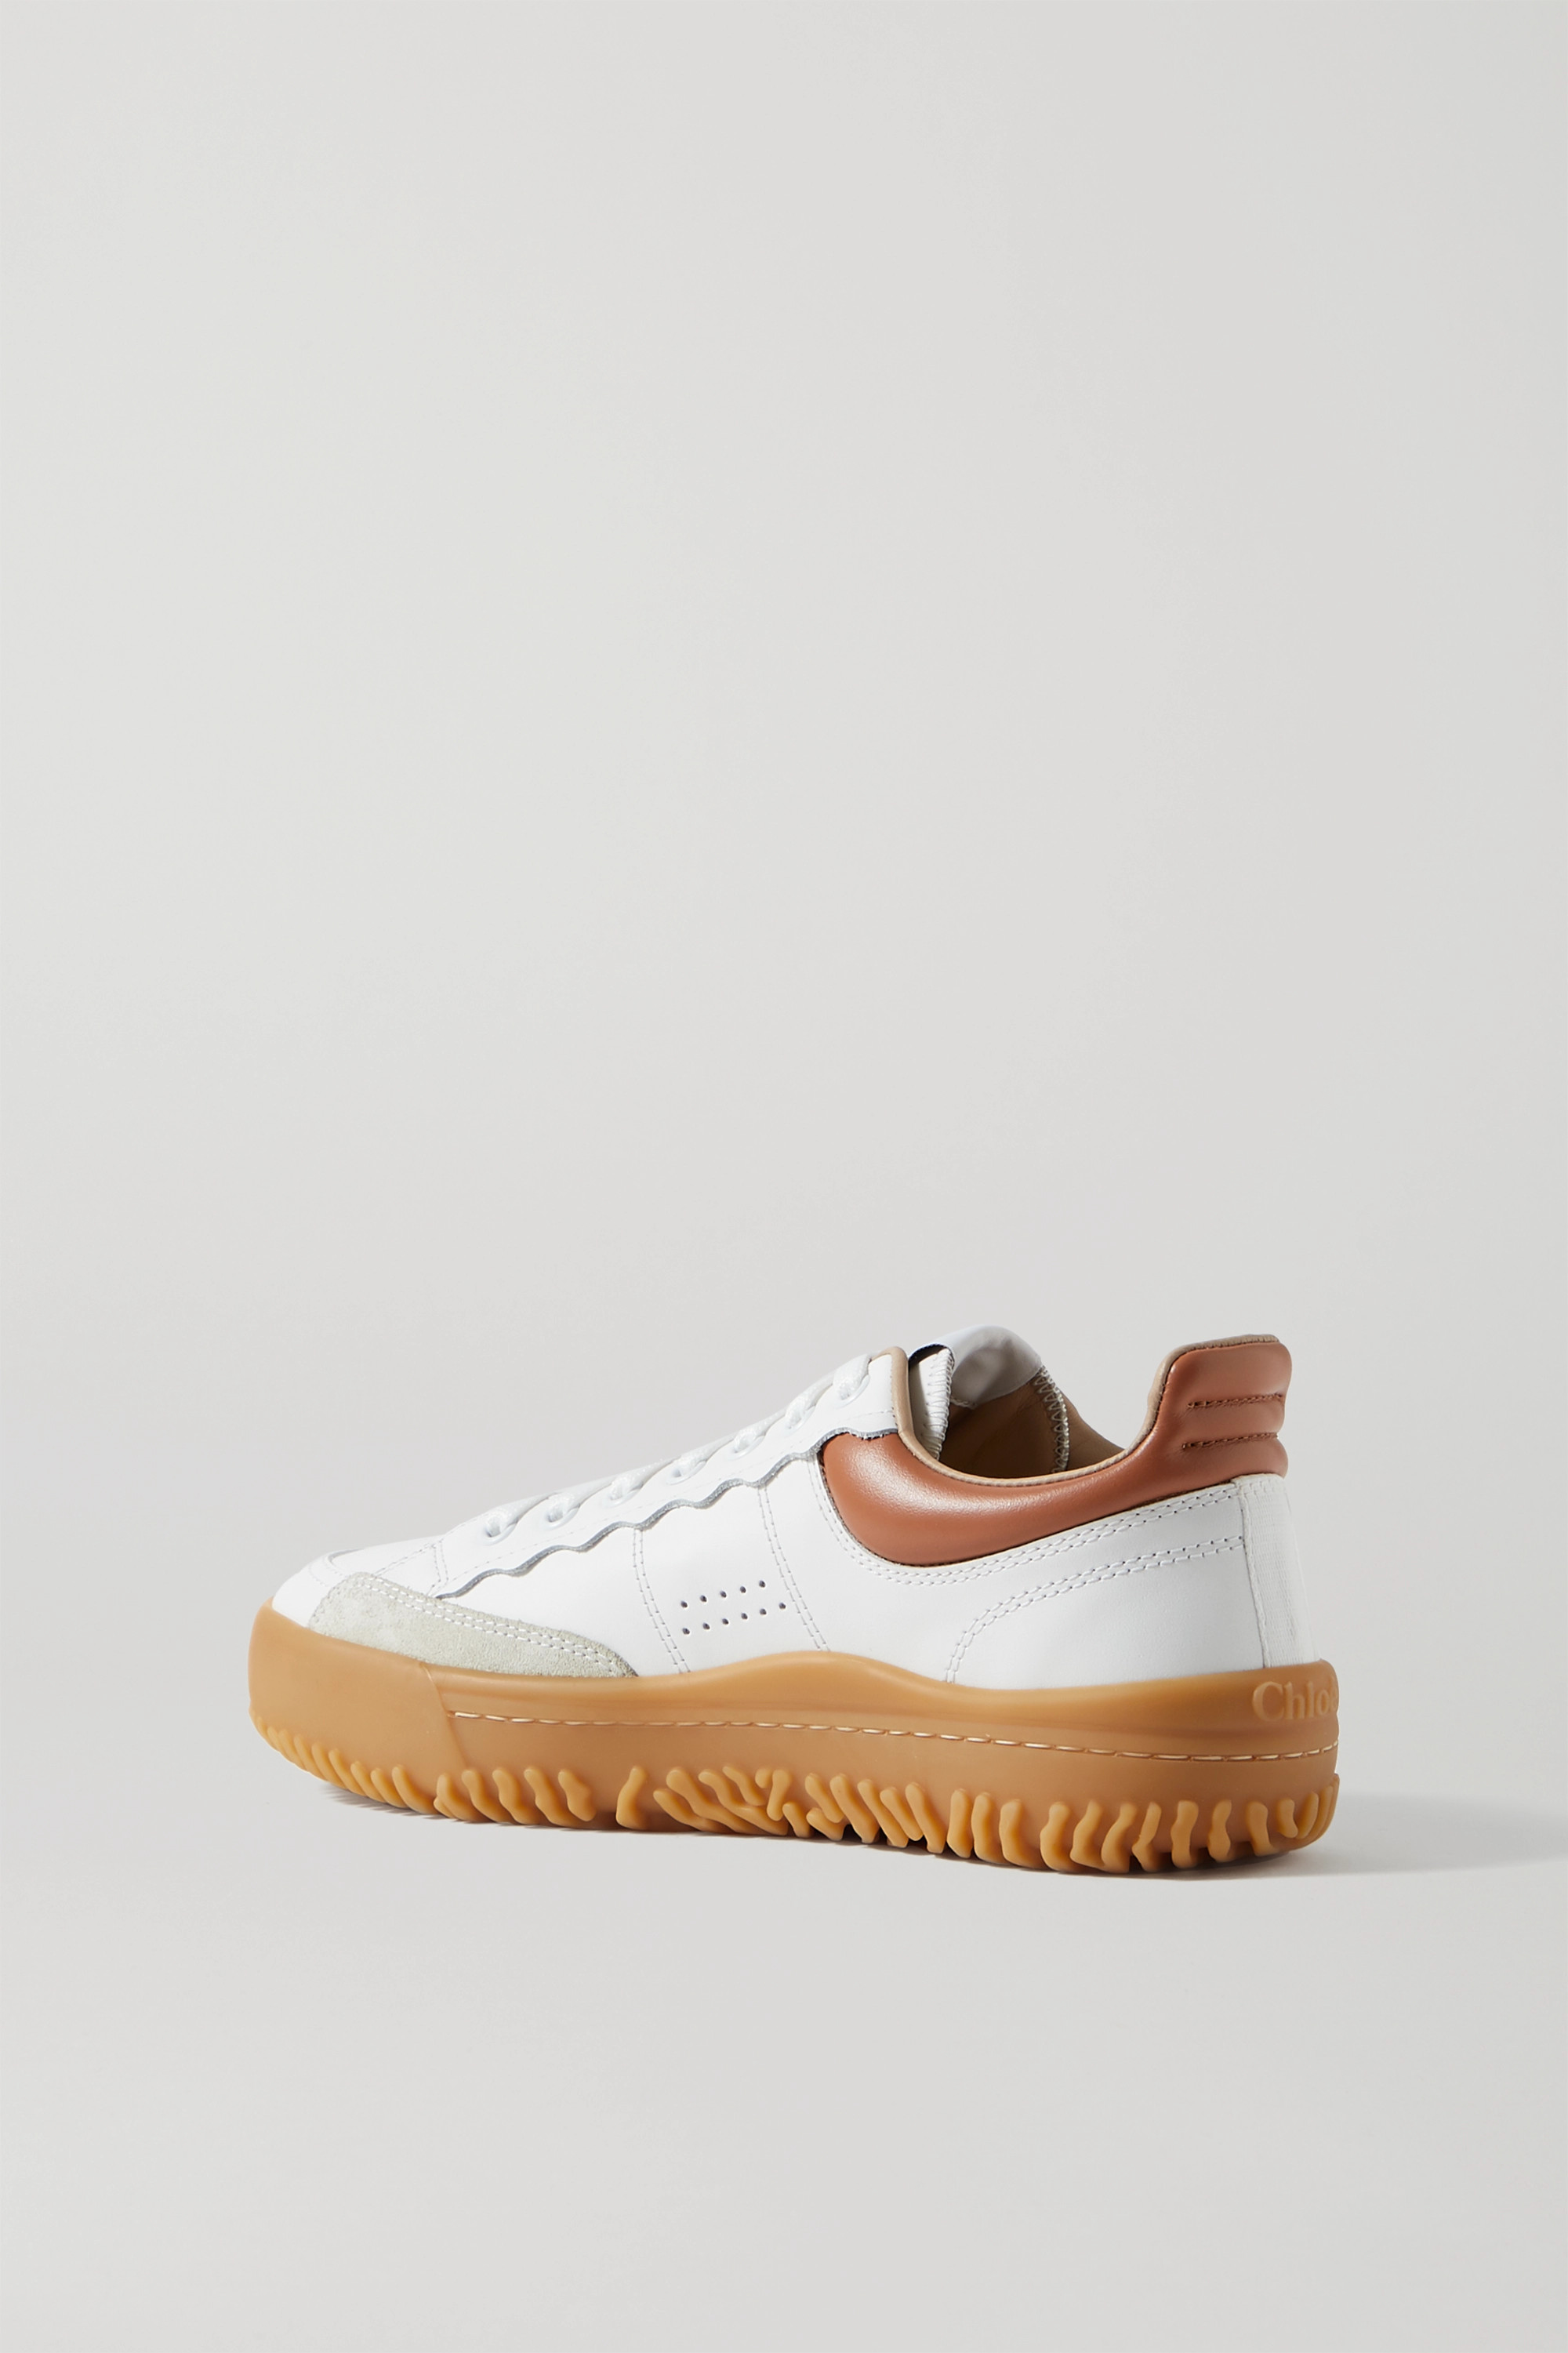 Chloé Franckie leather and suede sneakers